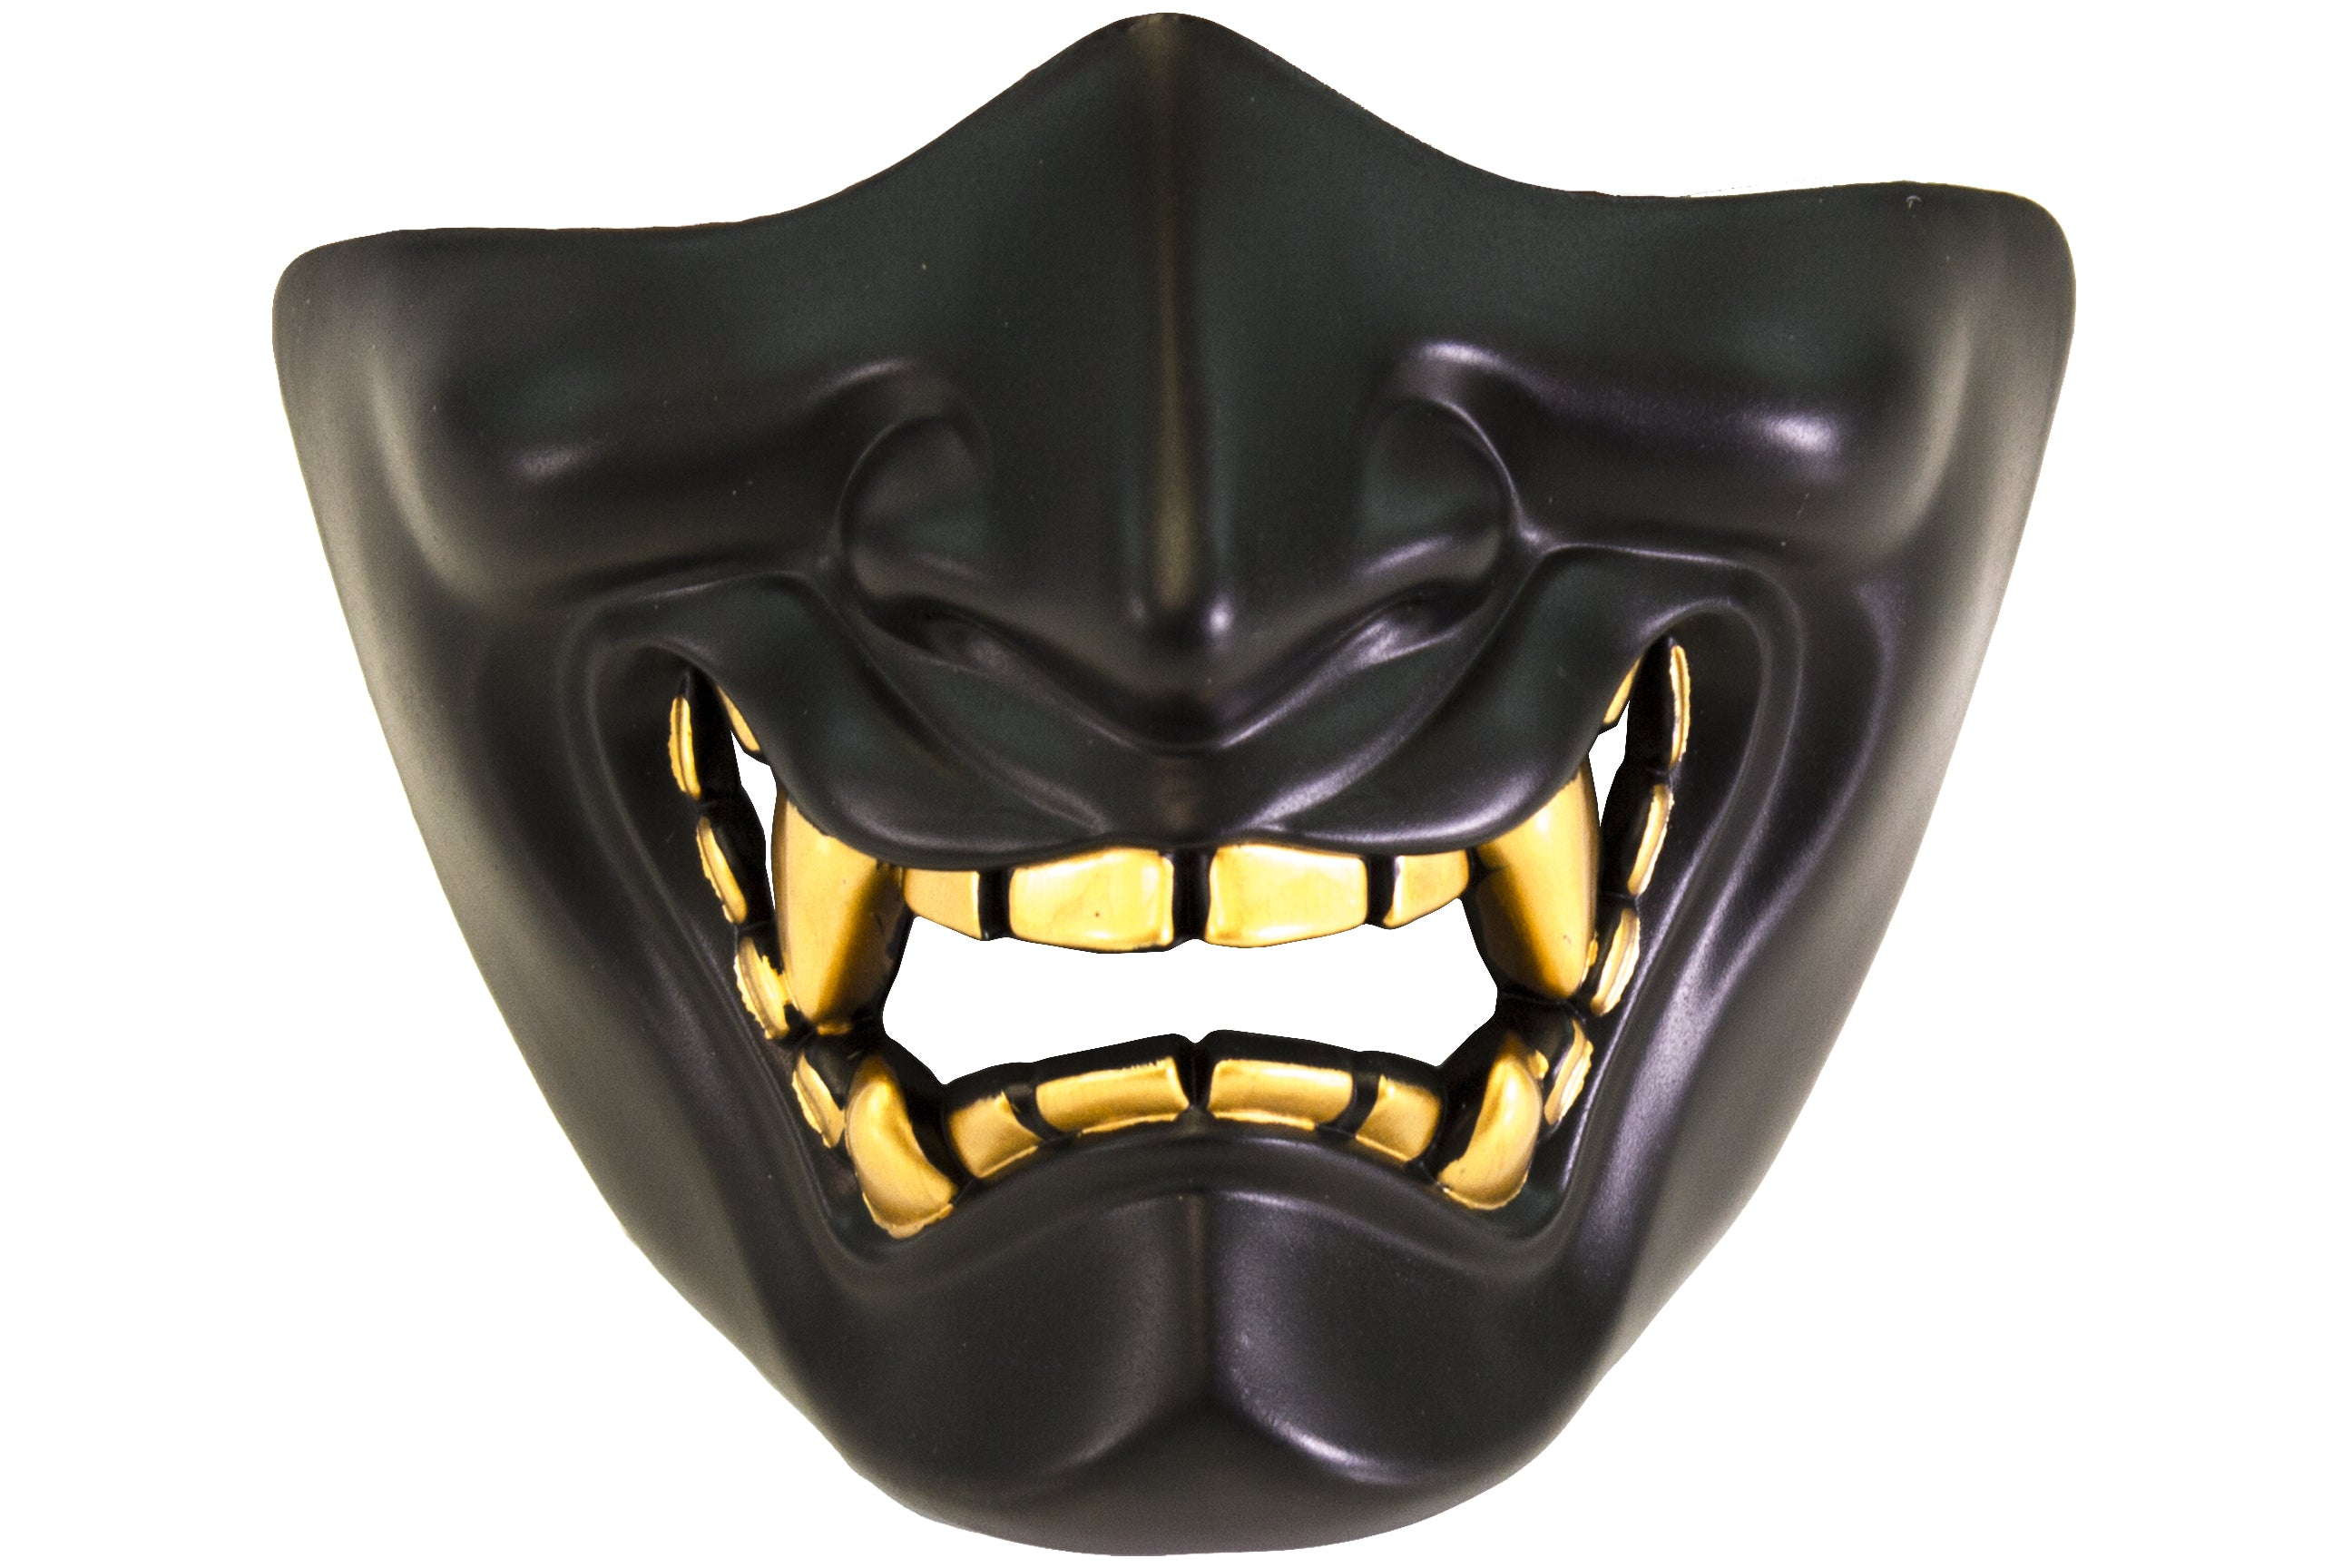 V5 NP DEVIL LOWER FACE SHIELD V5